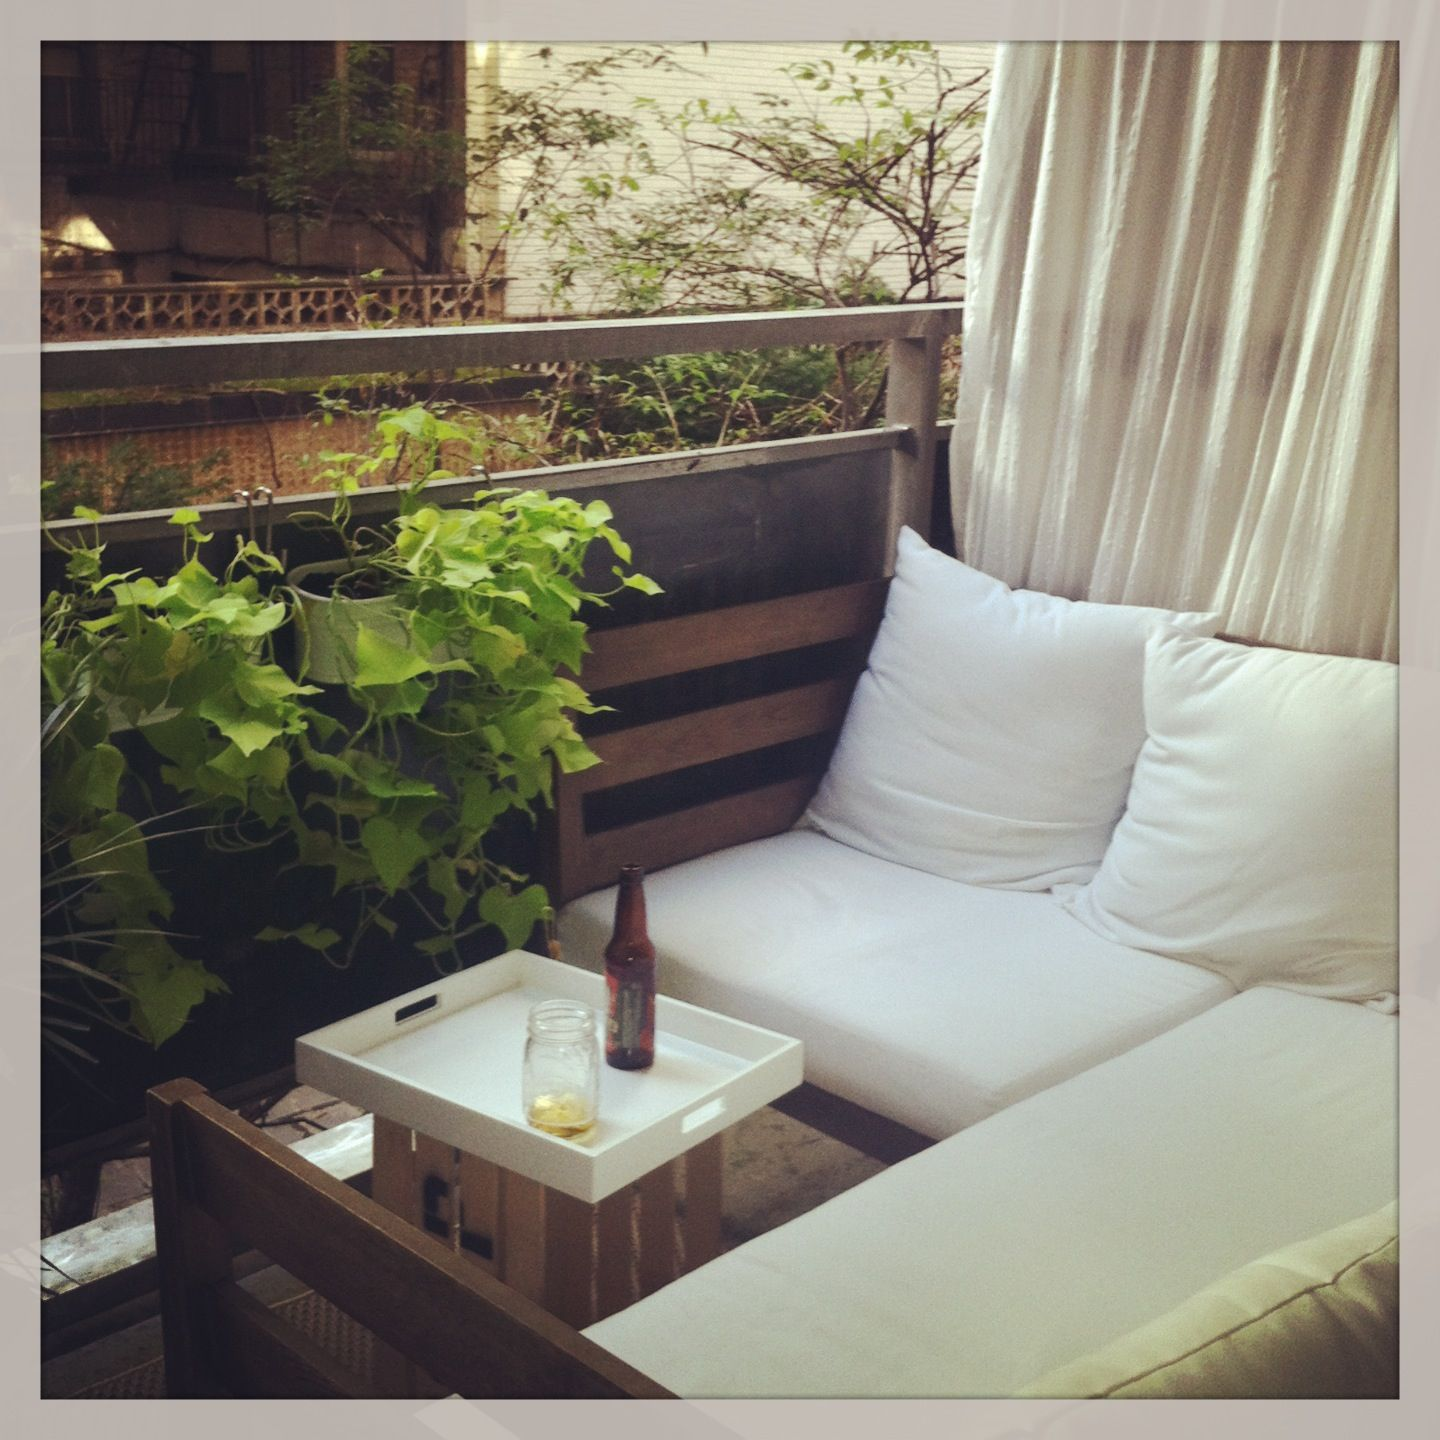 Cute balcony dream everything balcony balcony - 1 bedroom apartments everything included ...